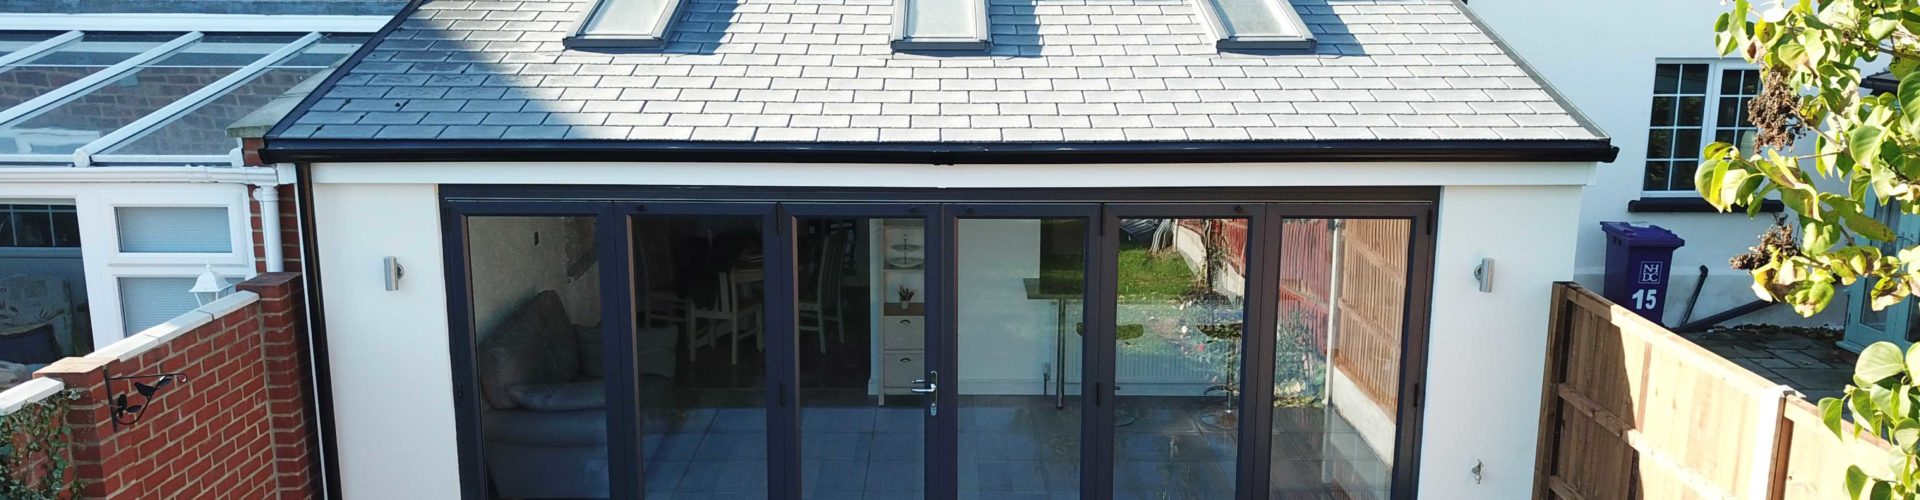 Bi-Fold Door Extensions, Stevenage